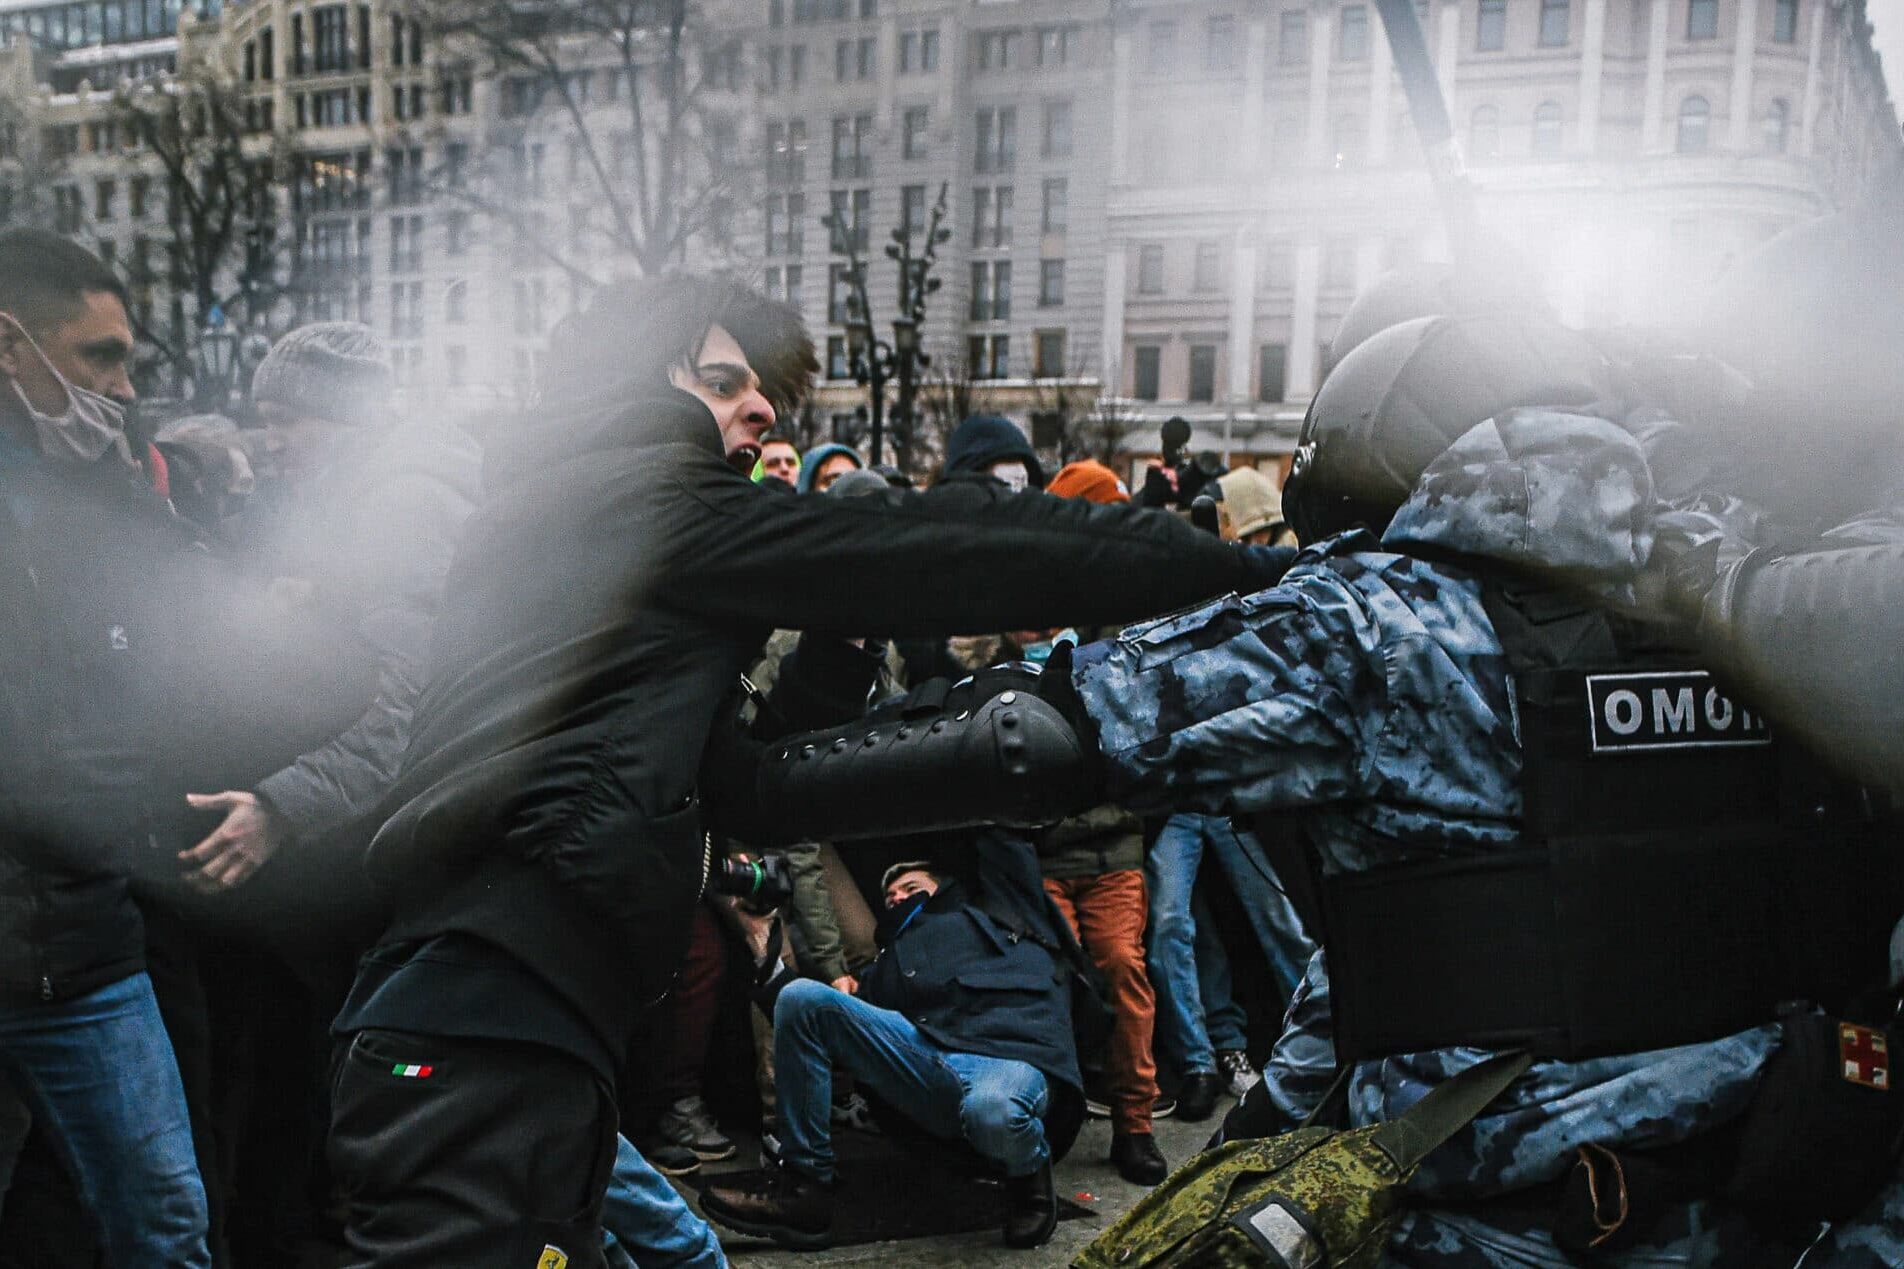   Supporters of detained Russian opposition leader Alexei Navalny clash with riot police officers during an unsanctioned rally in central Moscow on 01232021   MR Online